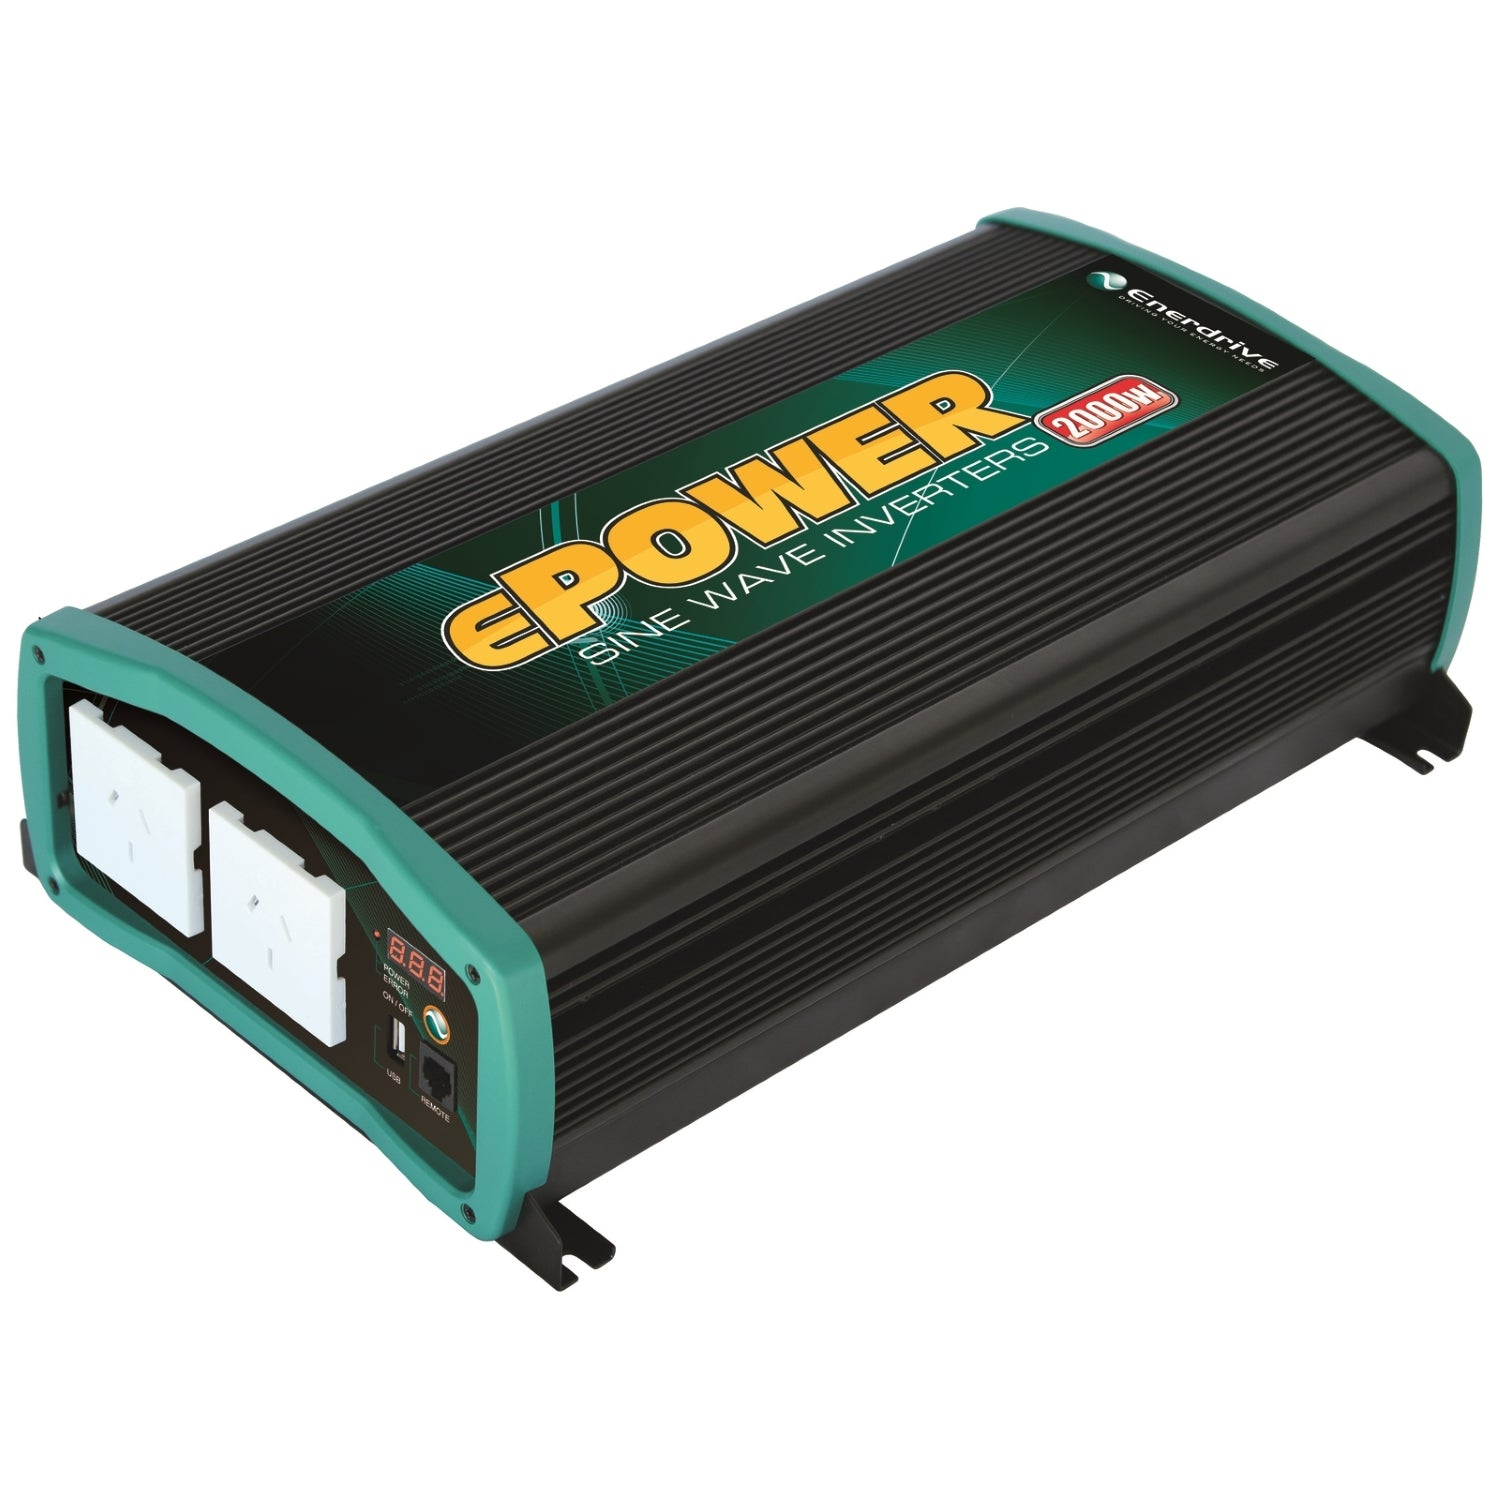 Enerdrive Inverter 2000 Watt 12V & 24V